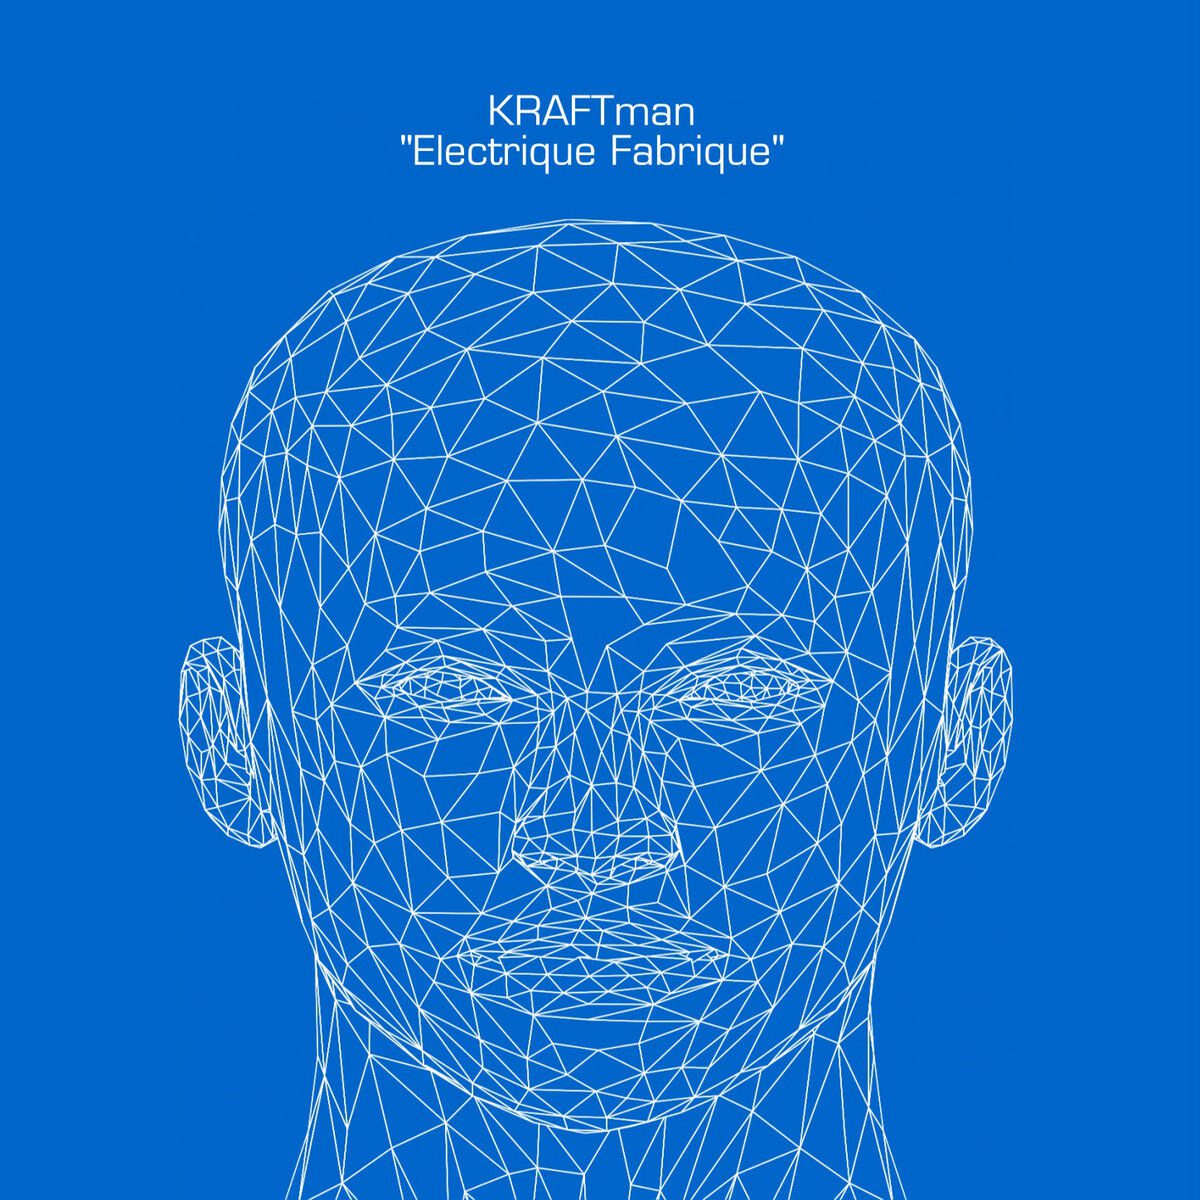 KRAFTman ready to release 'Electrique Fabrique' - a clear sonically inspired hommage to Kraftwerk